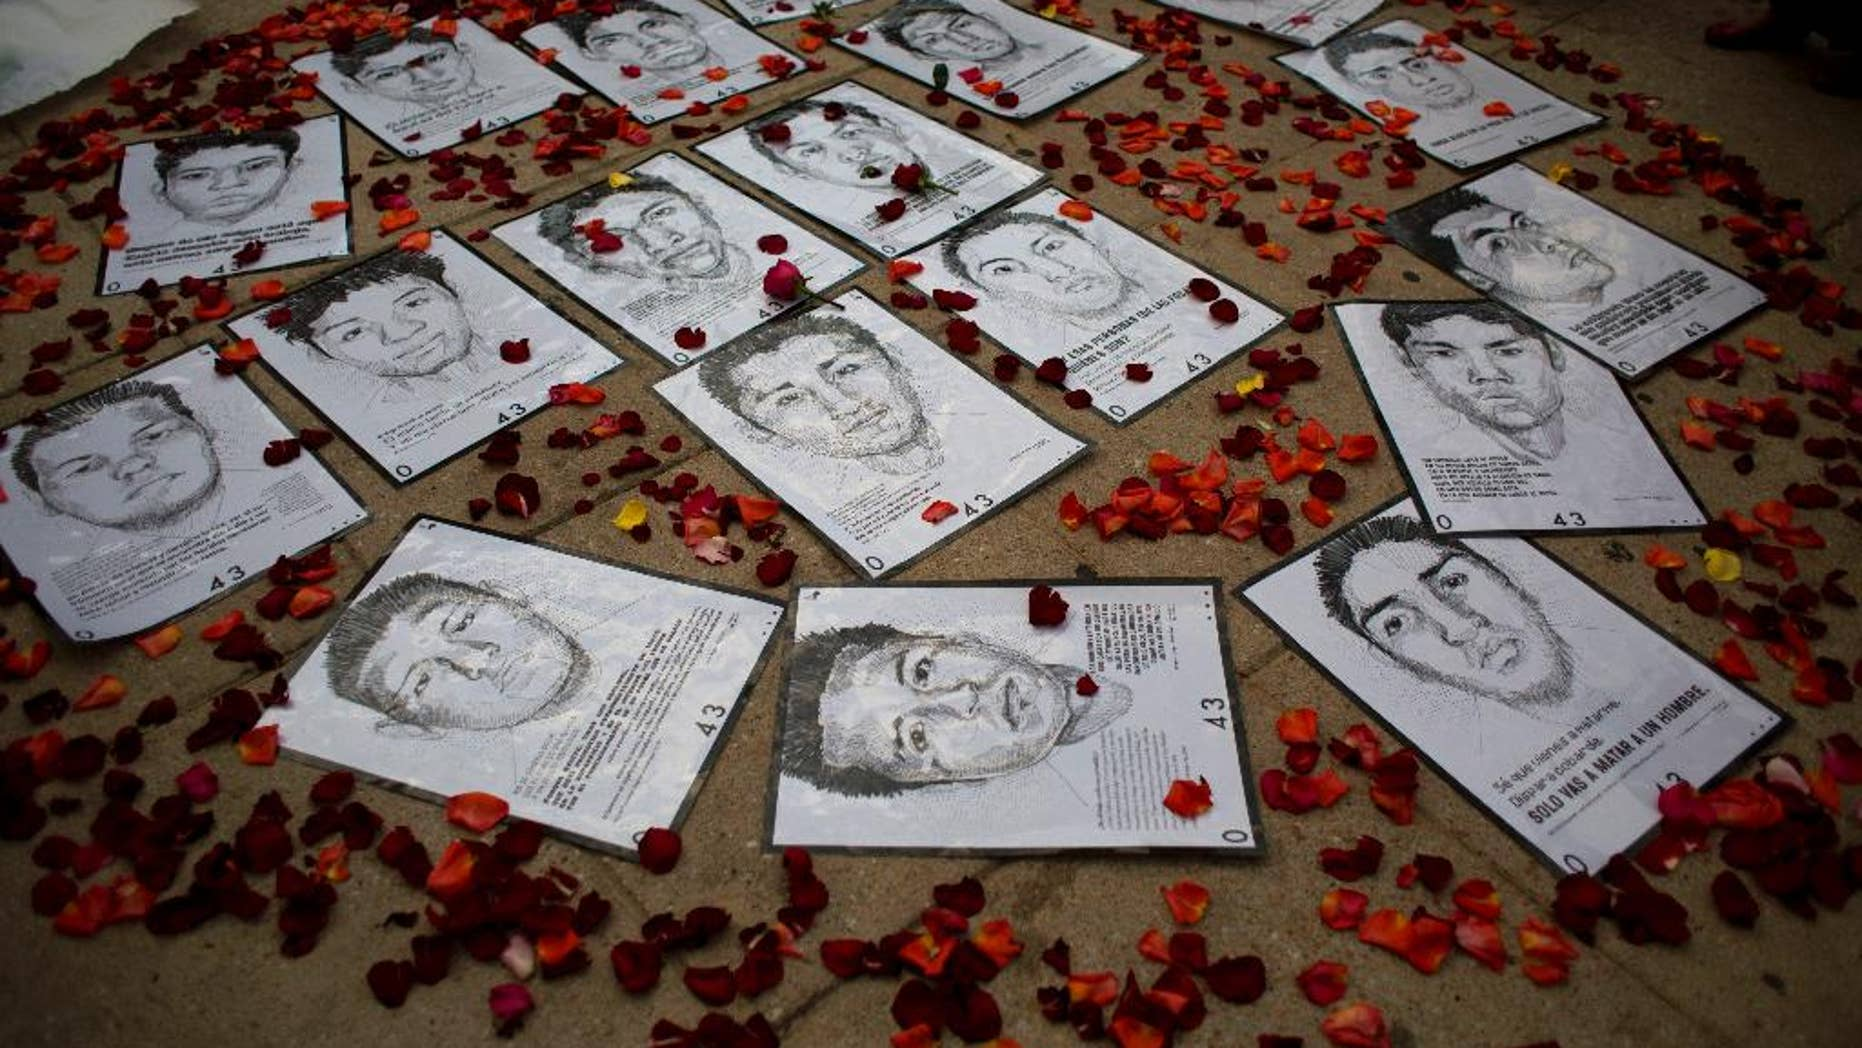 FILE - This Thursday, March 26, 2015 file photo shows drawings of some of 43 missing rural college students are surrounded by flower petals, forming the shape of a heart, during a protest marking the six-month anniversary of their disappearance, in Mexico City. Angry citizens and parents of the 43 missing students urged the country not to abandon them. (AP Photo/Rebecca Blackwell, File)